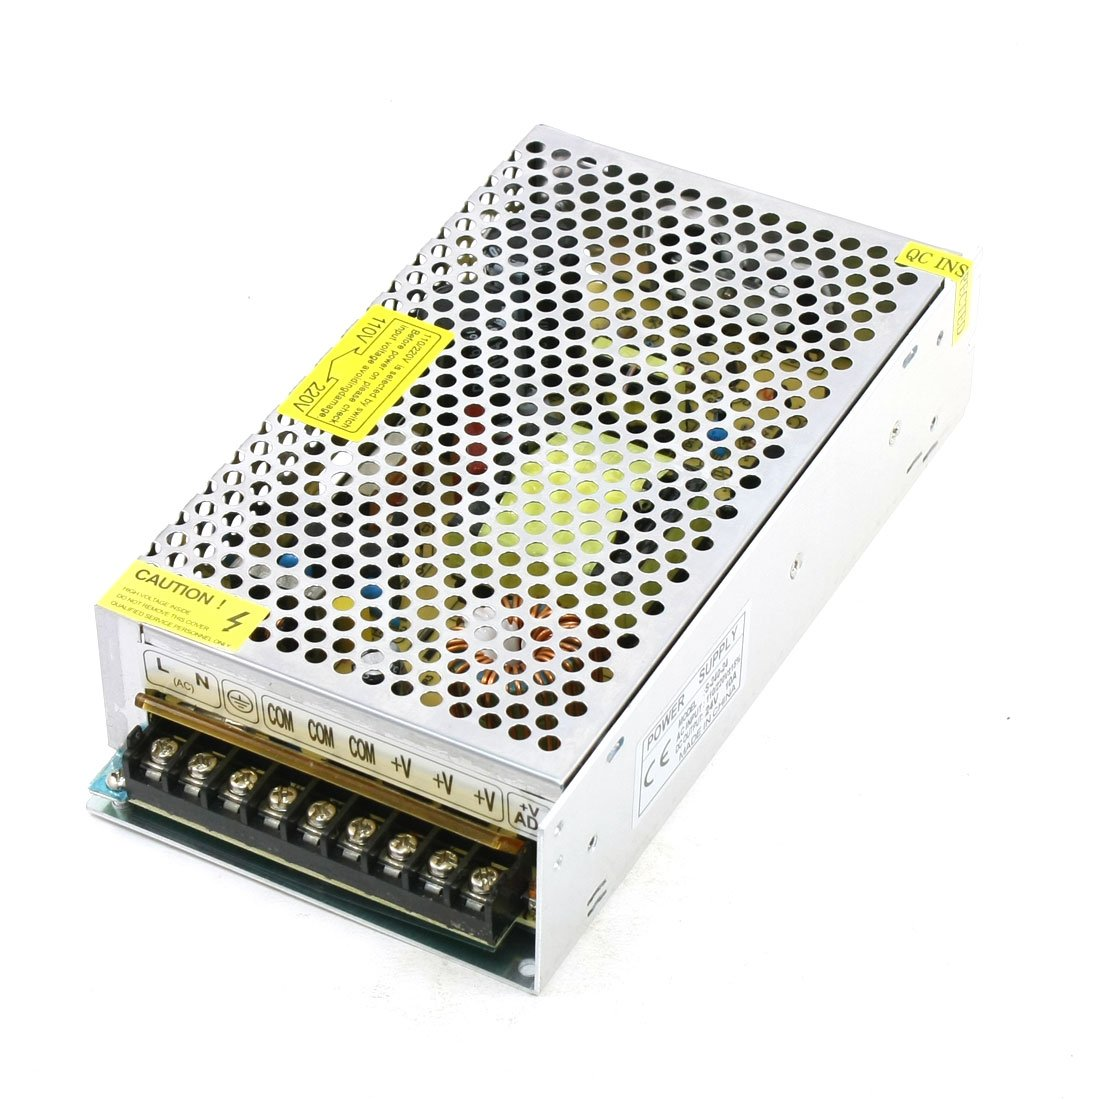 W2N9 5X S-240-24 Aluminum Housing Output DC 24V 10A 240W LED Power Supply W2N9